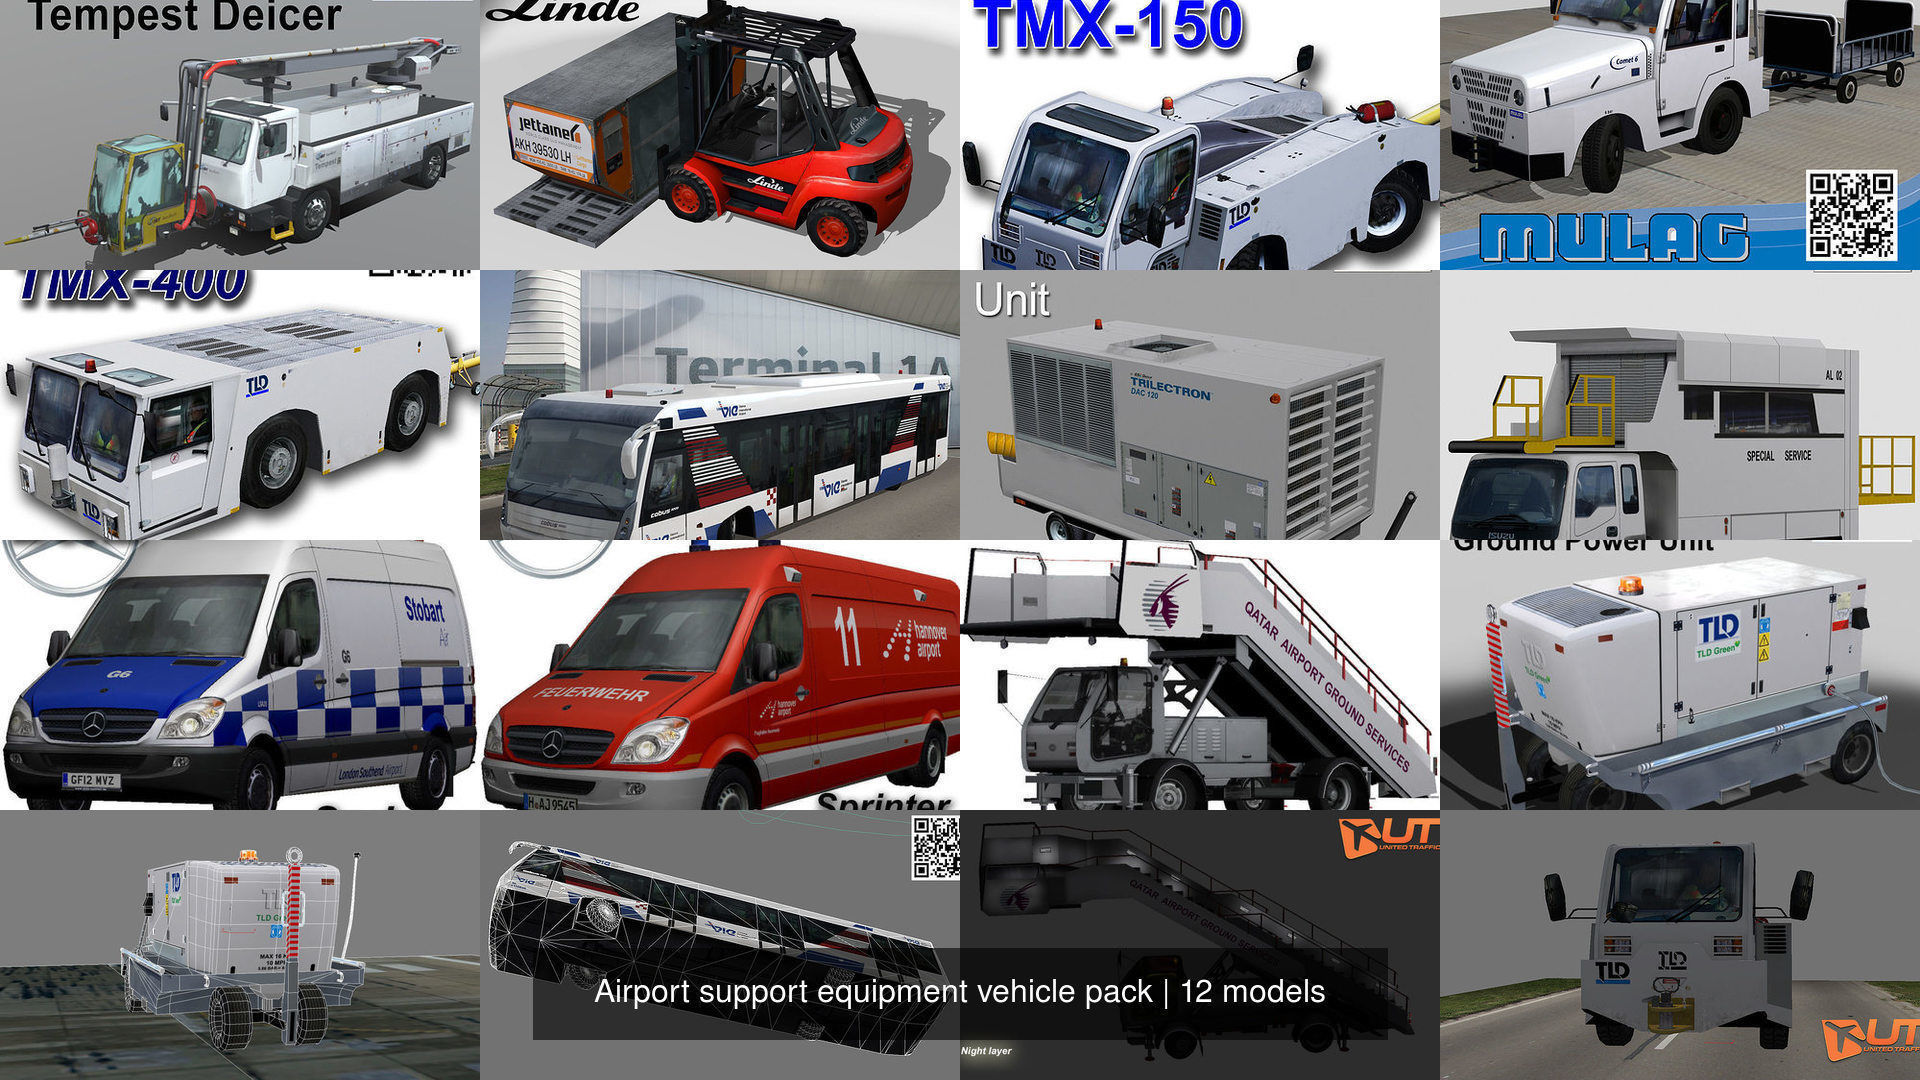 Airport support equipment vehicle pack